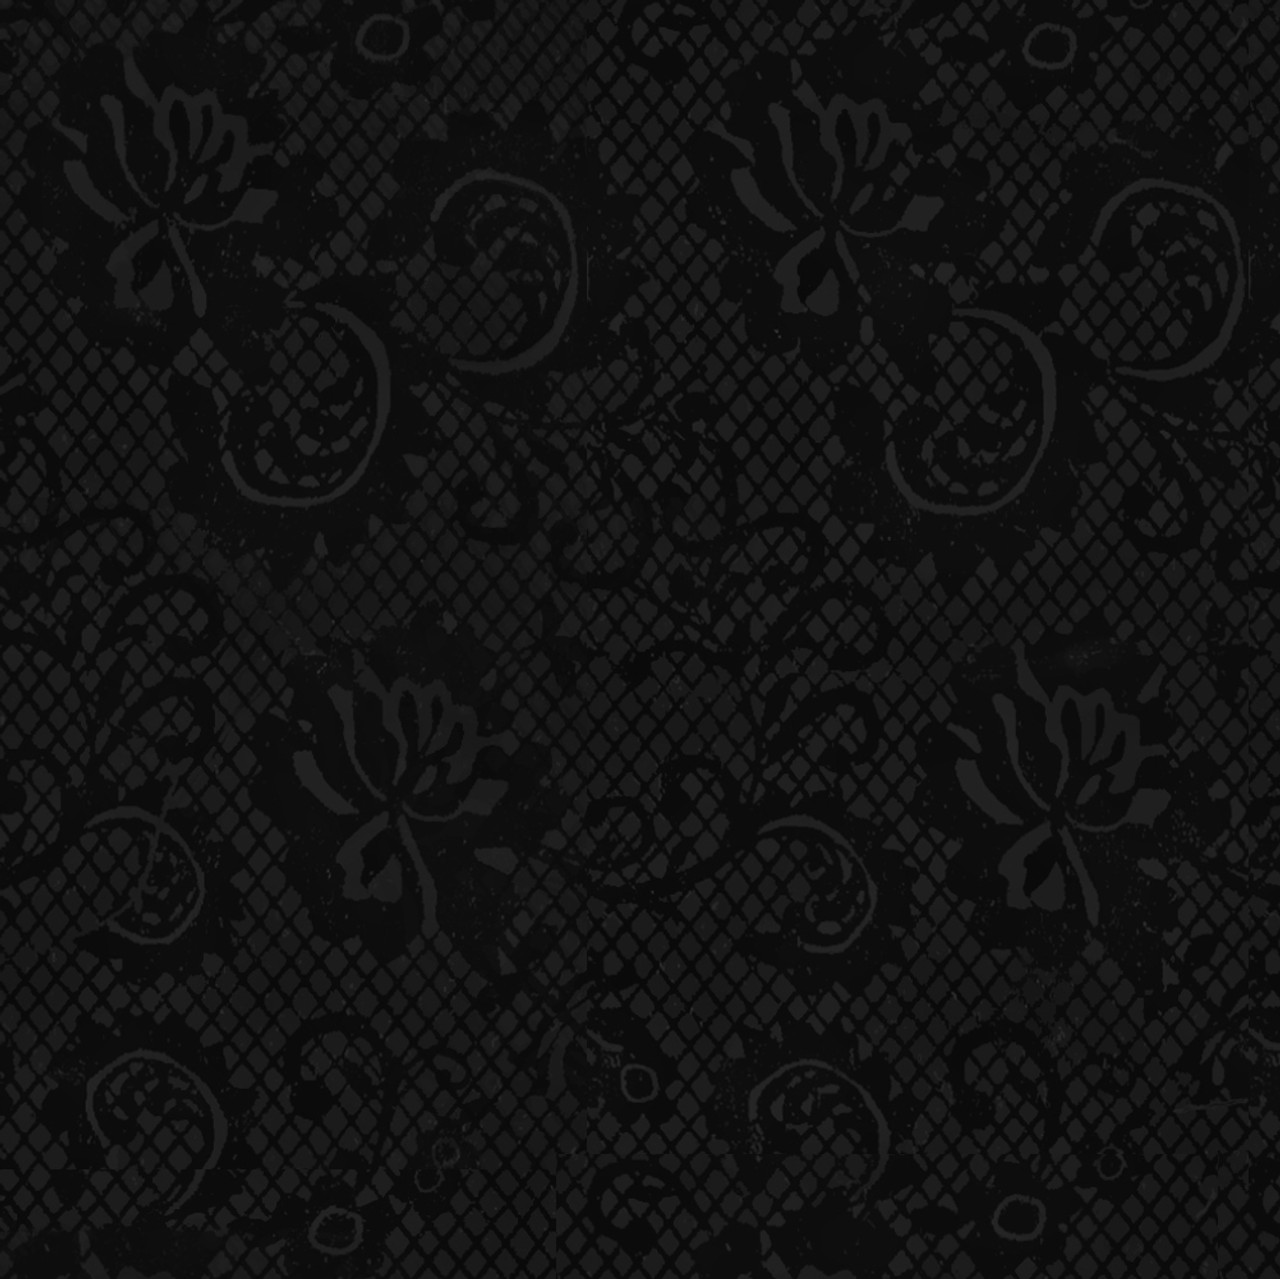 Black Lace Gift Wrap Wrapping Paper